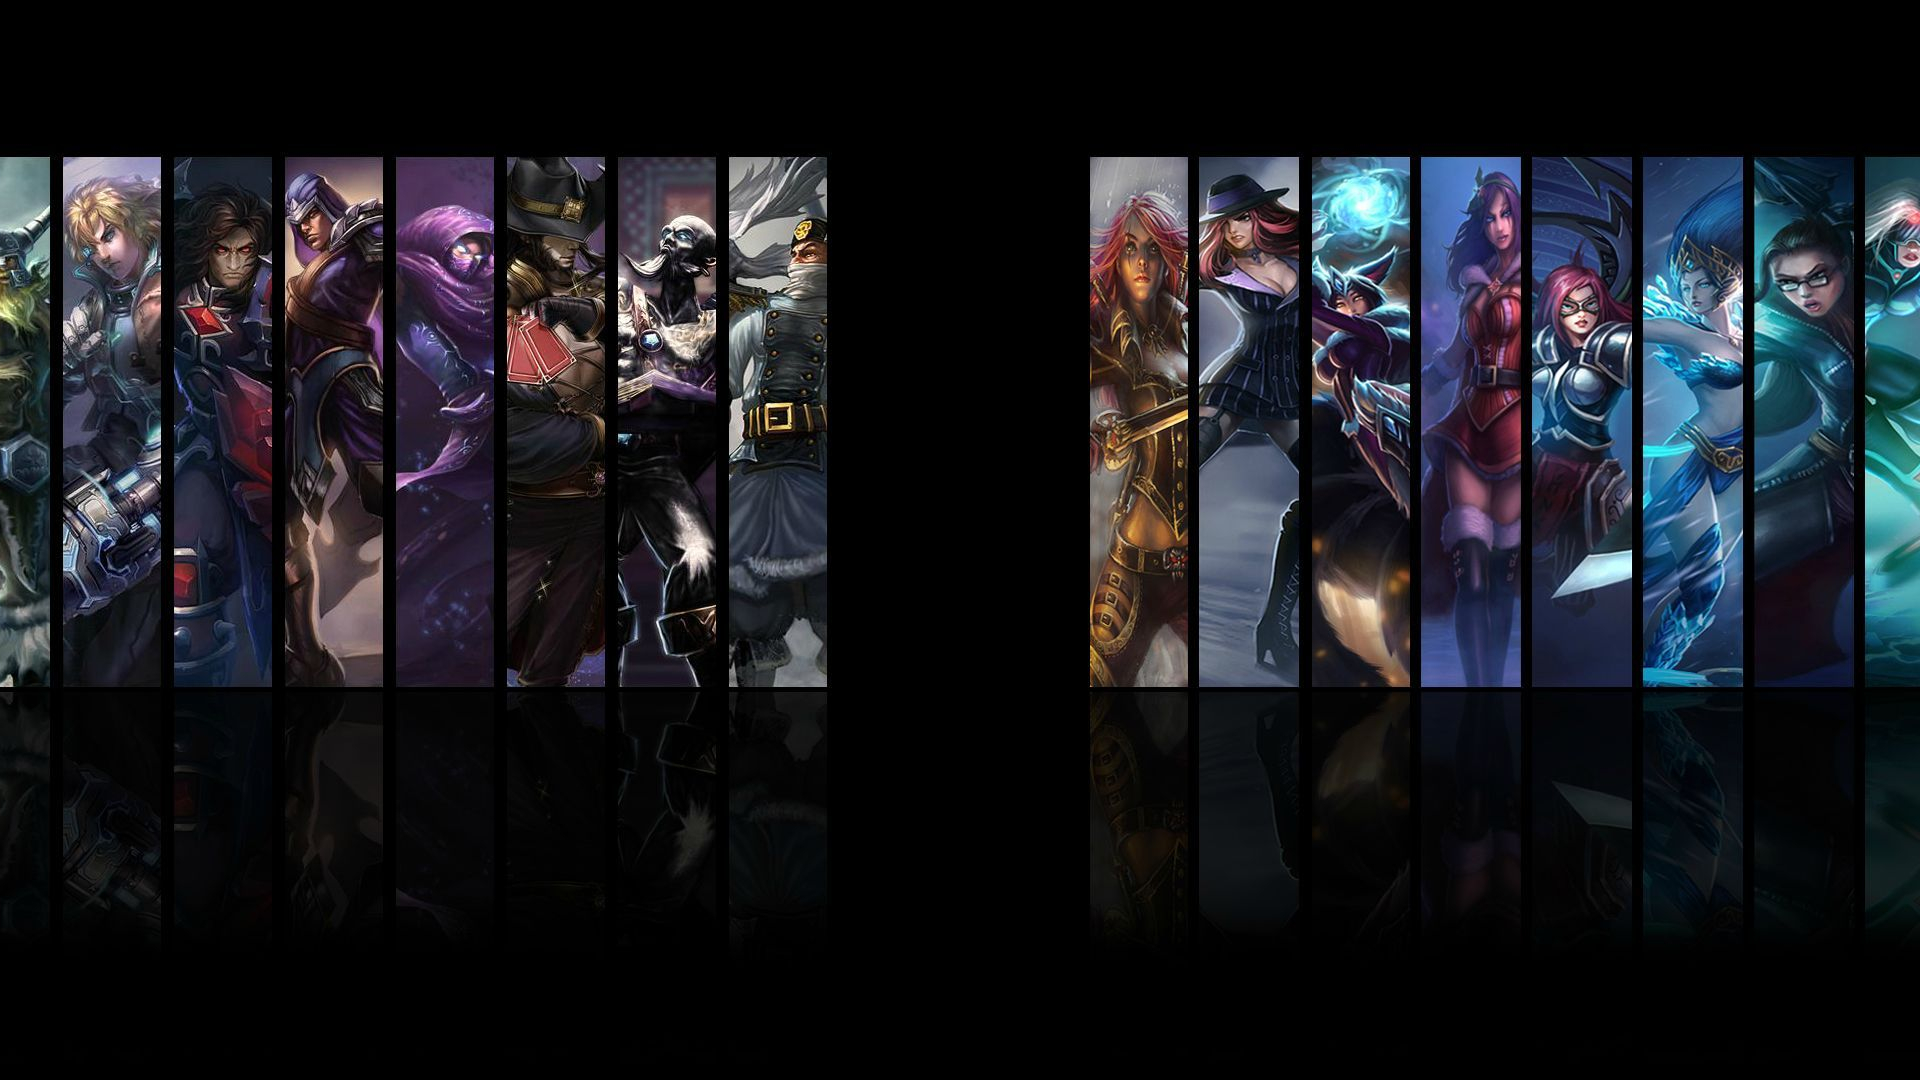 Free Download Dual Monitor Wallpaper League Of Legends Download